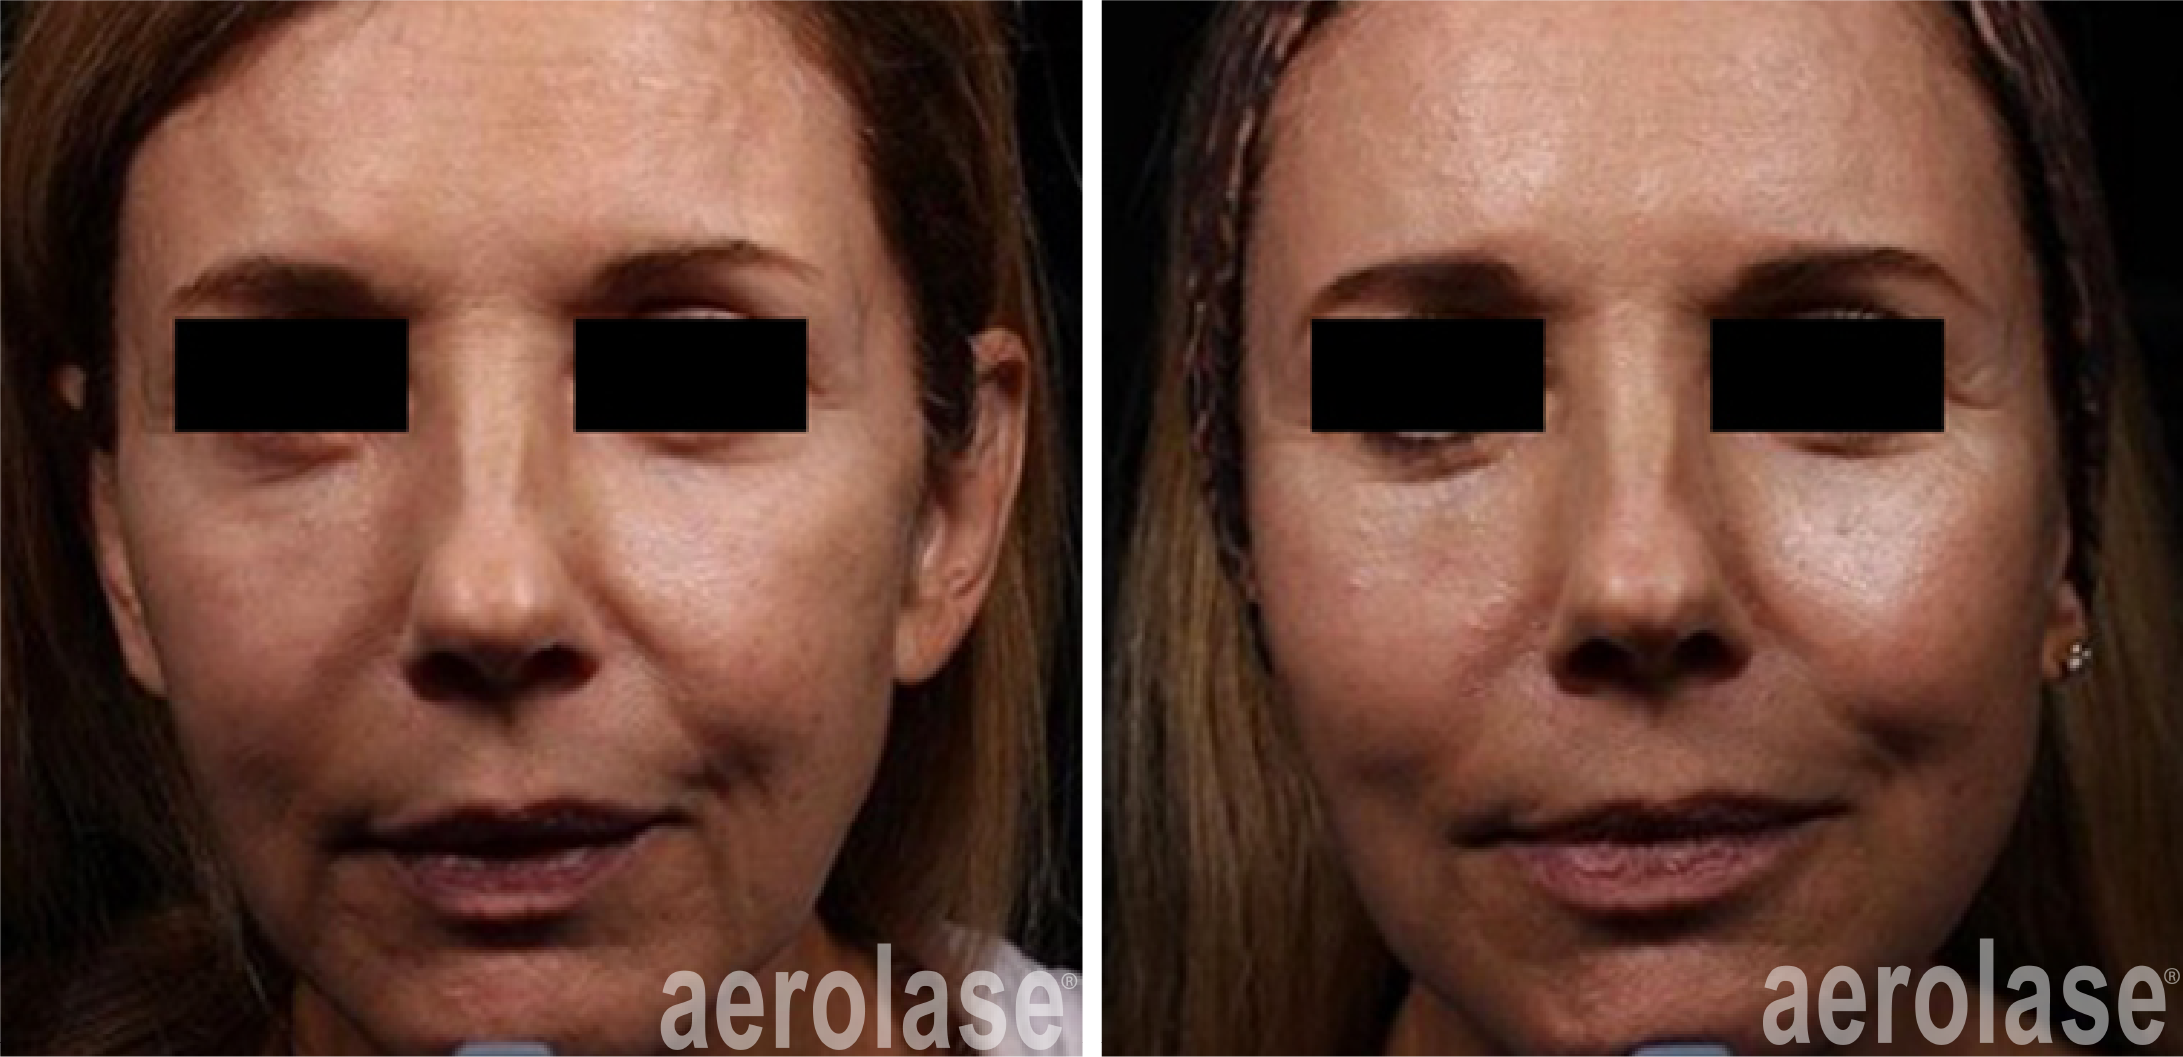 skin rejuvenation with neoskin procedure in cornelius nc